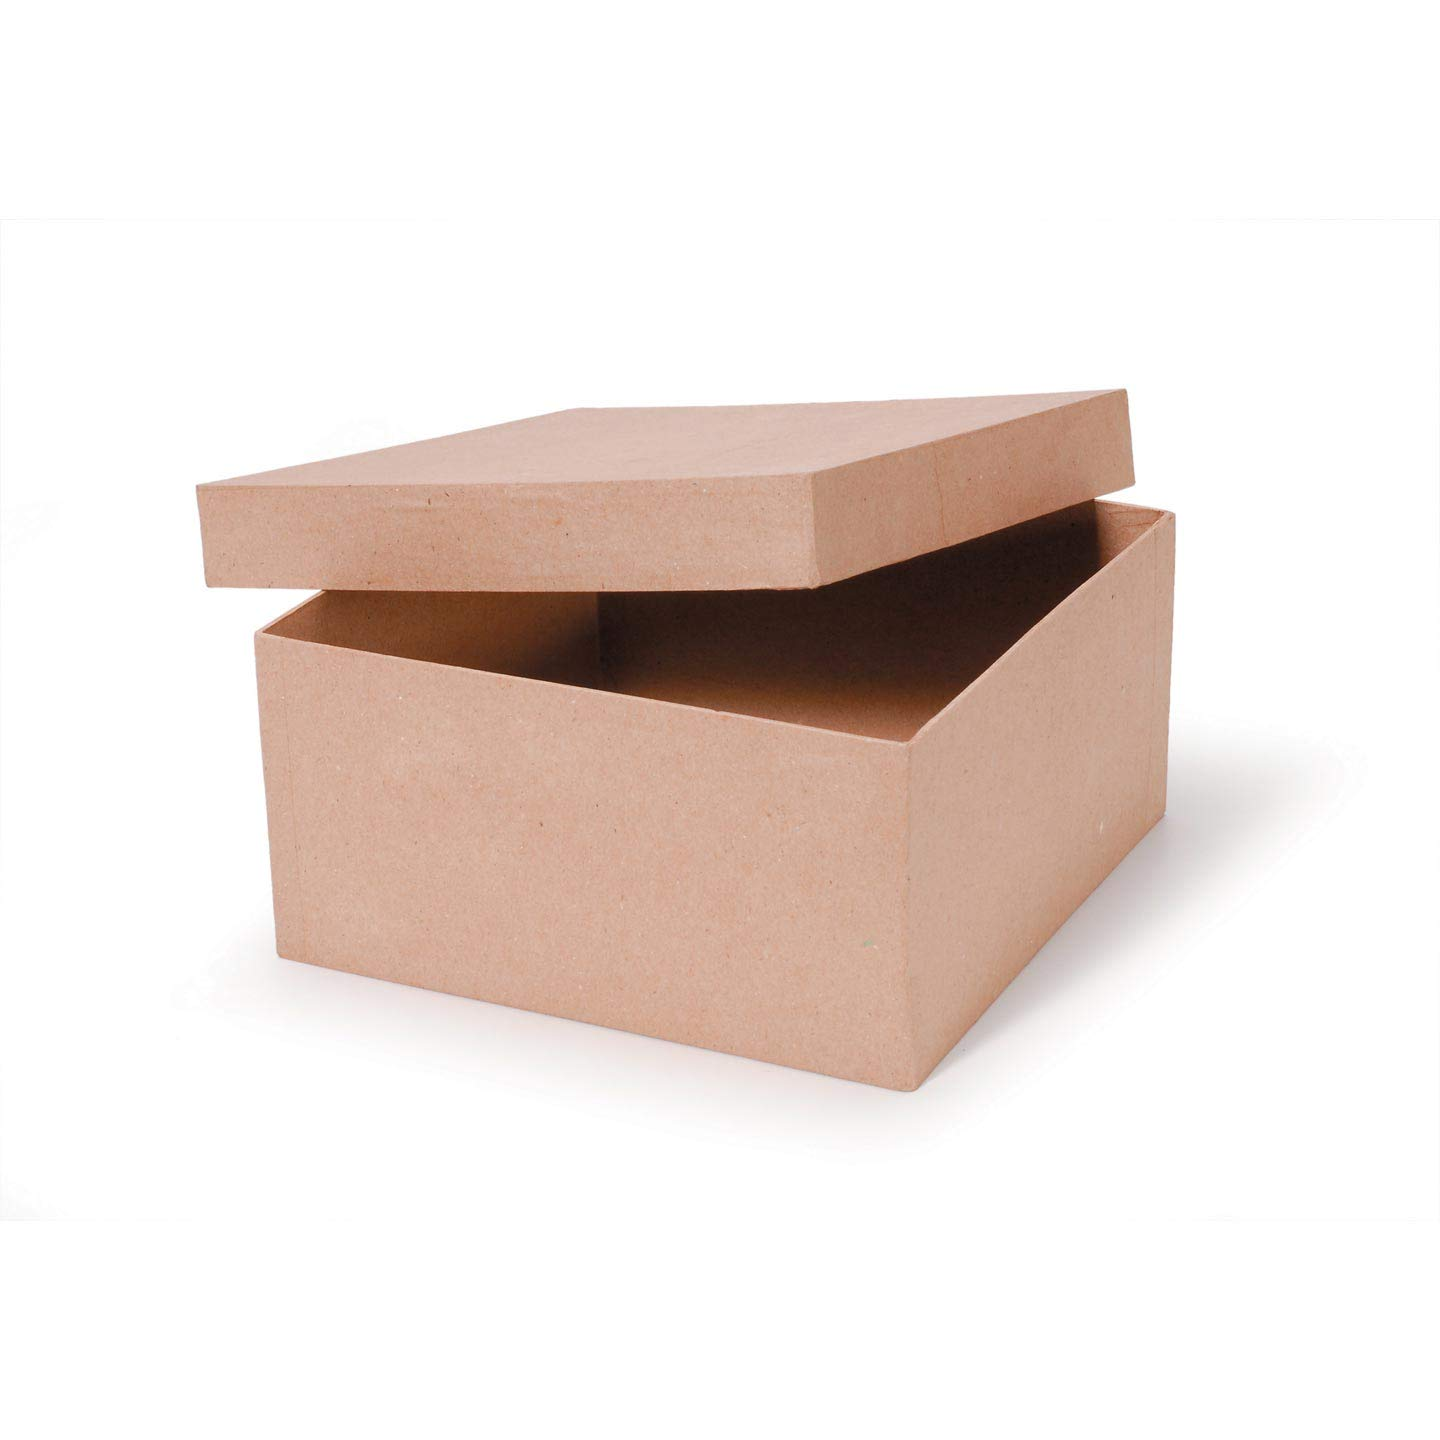 Bulk Buy: Darice DIY Crafts Paper Mache Box Square 10 x 10 x 5 in (2-Pack) 2805-41FCAL Inc. 4336884757